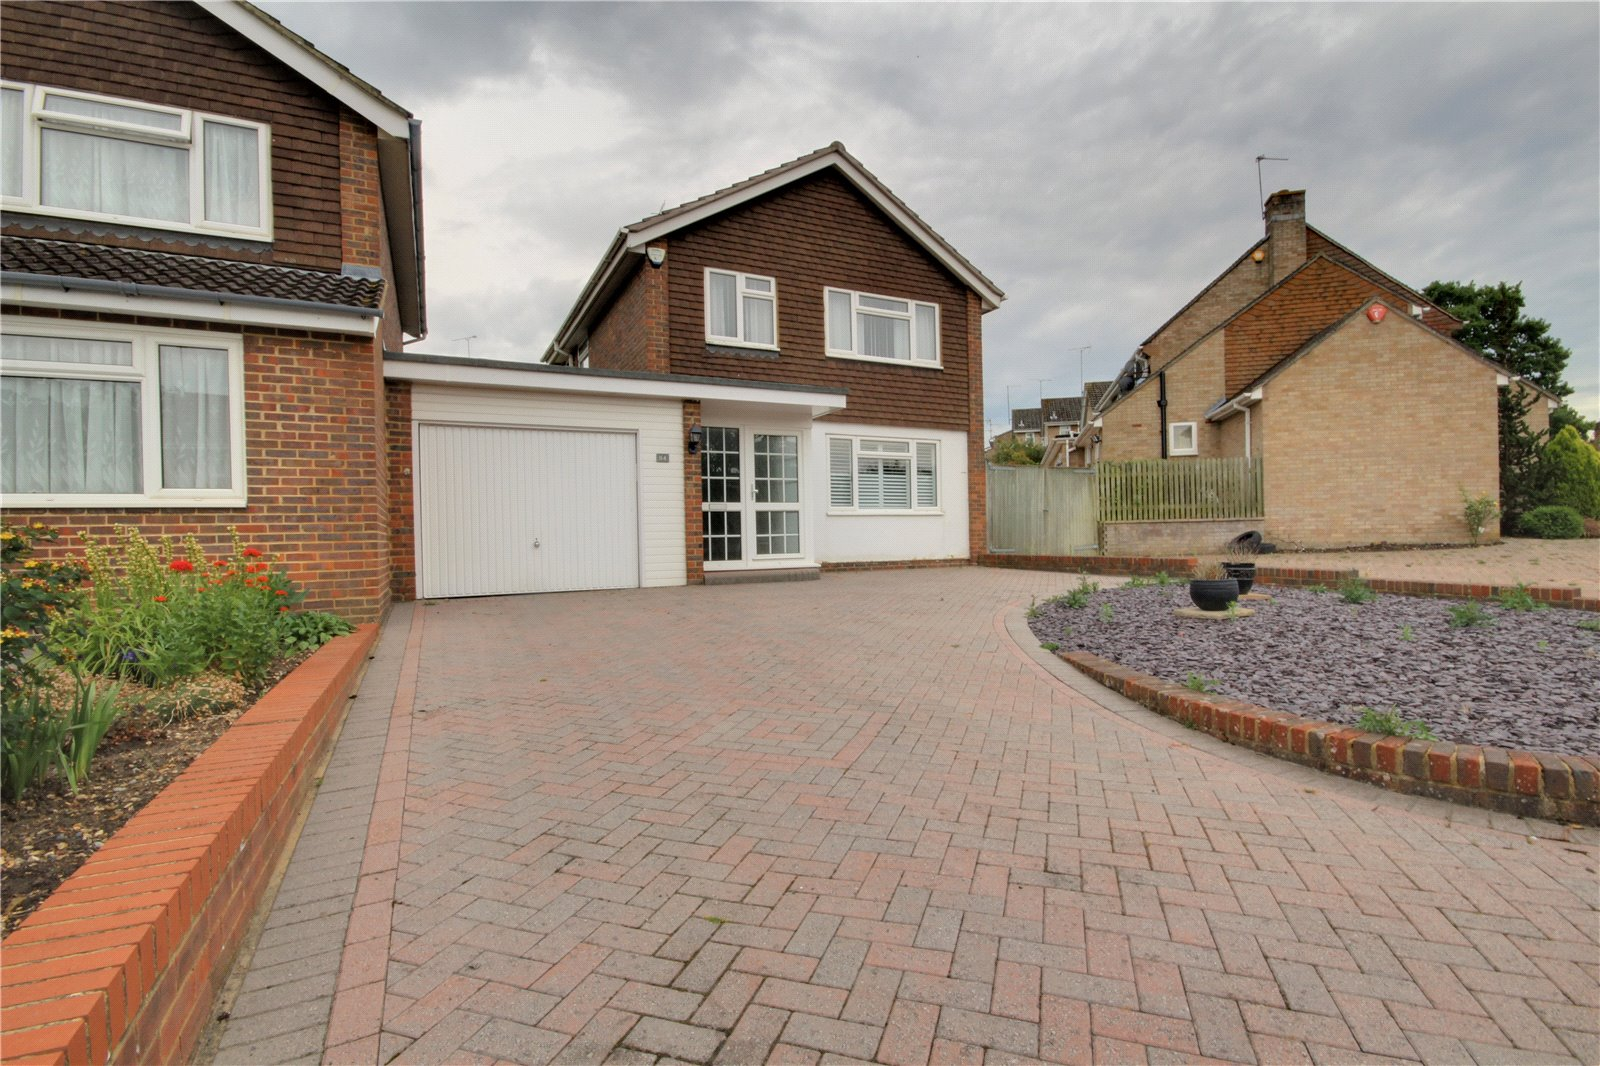 Redhatch Drive, Earley, Reading RG6